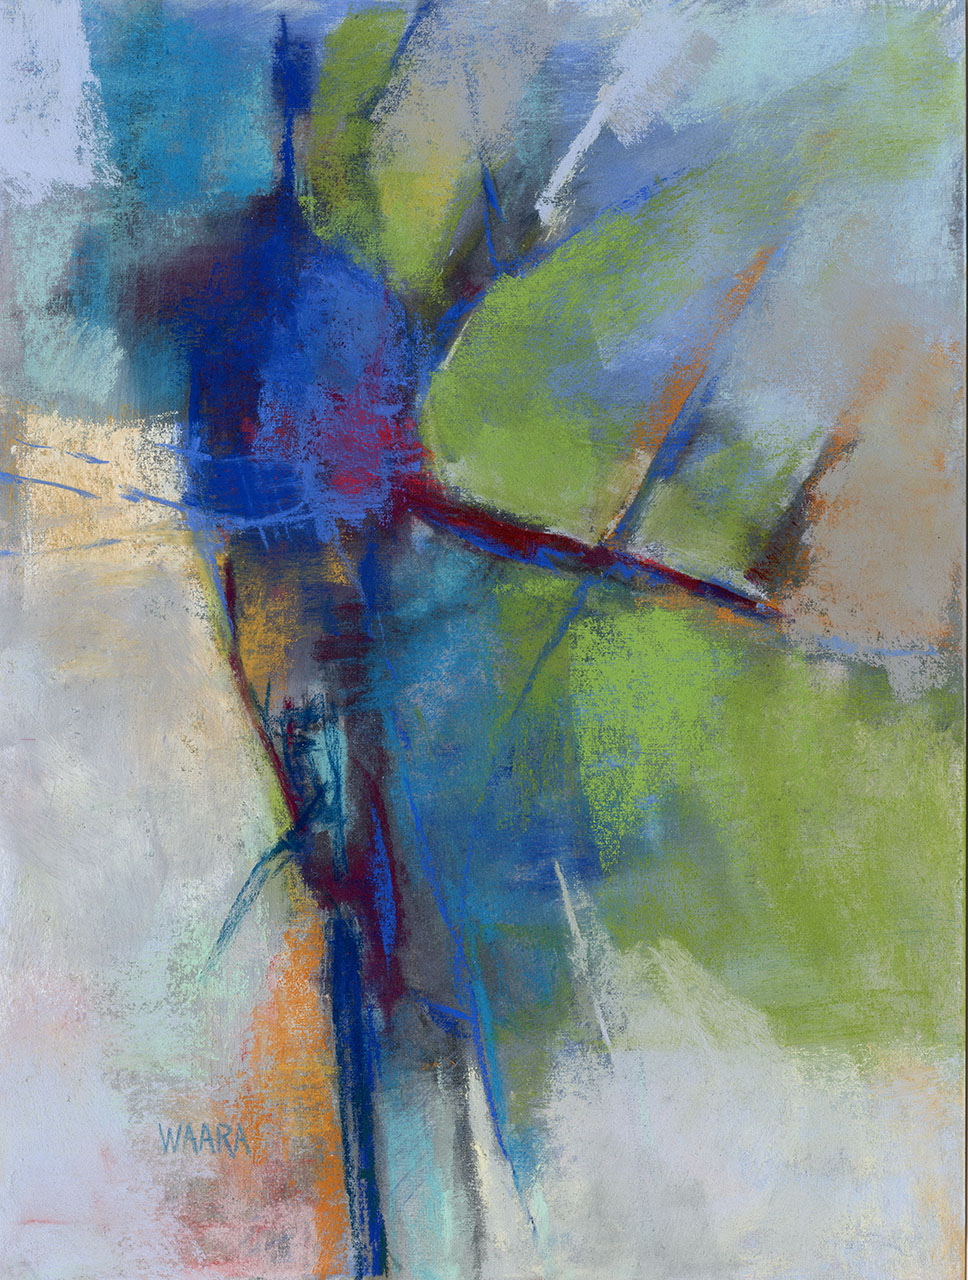 """The Juggler"" original abstract pastel painting by Maui artist Christine Waara"